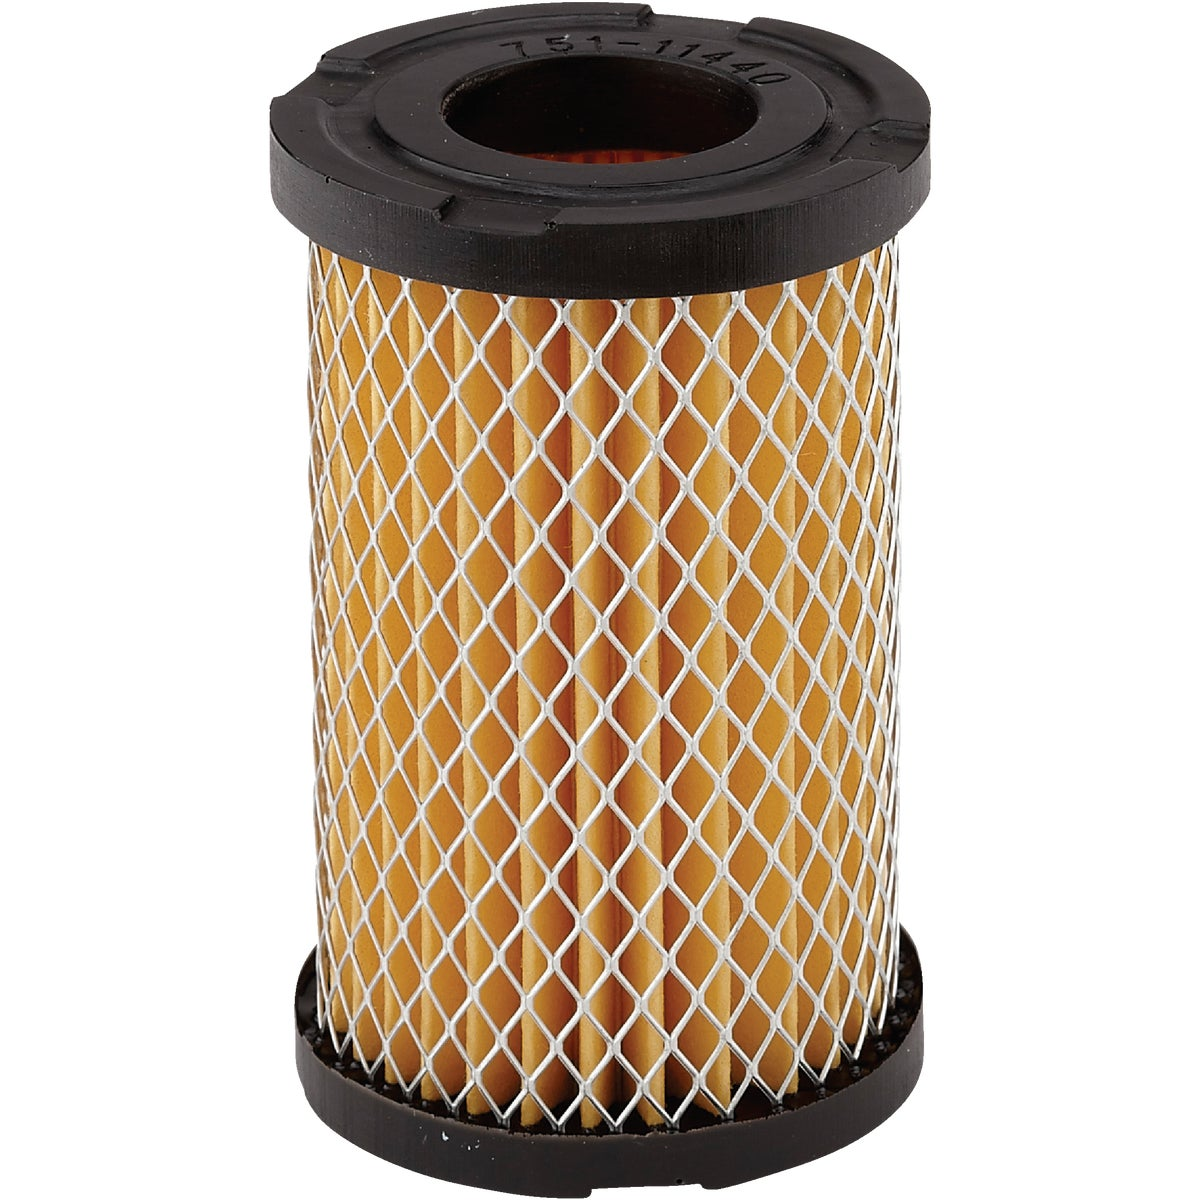 TECUMSEH AIR FILTER - 490-200-0020 by Arnold Corp